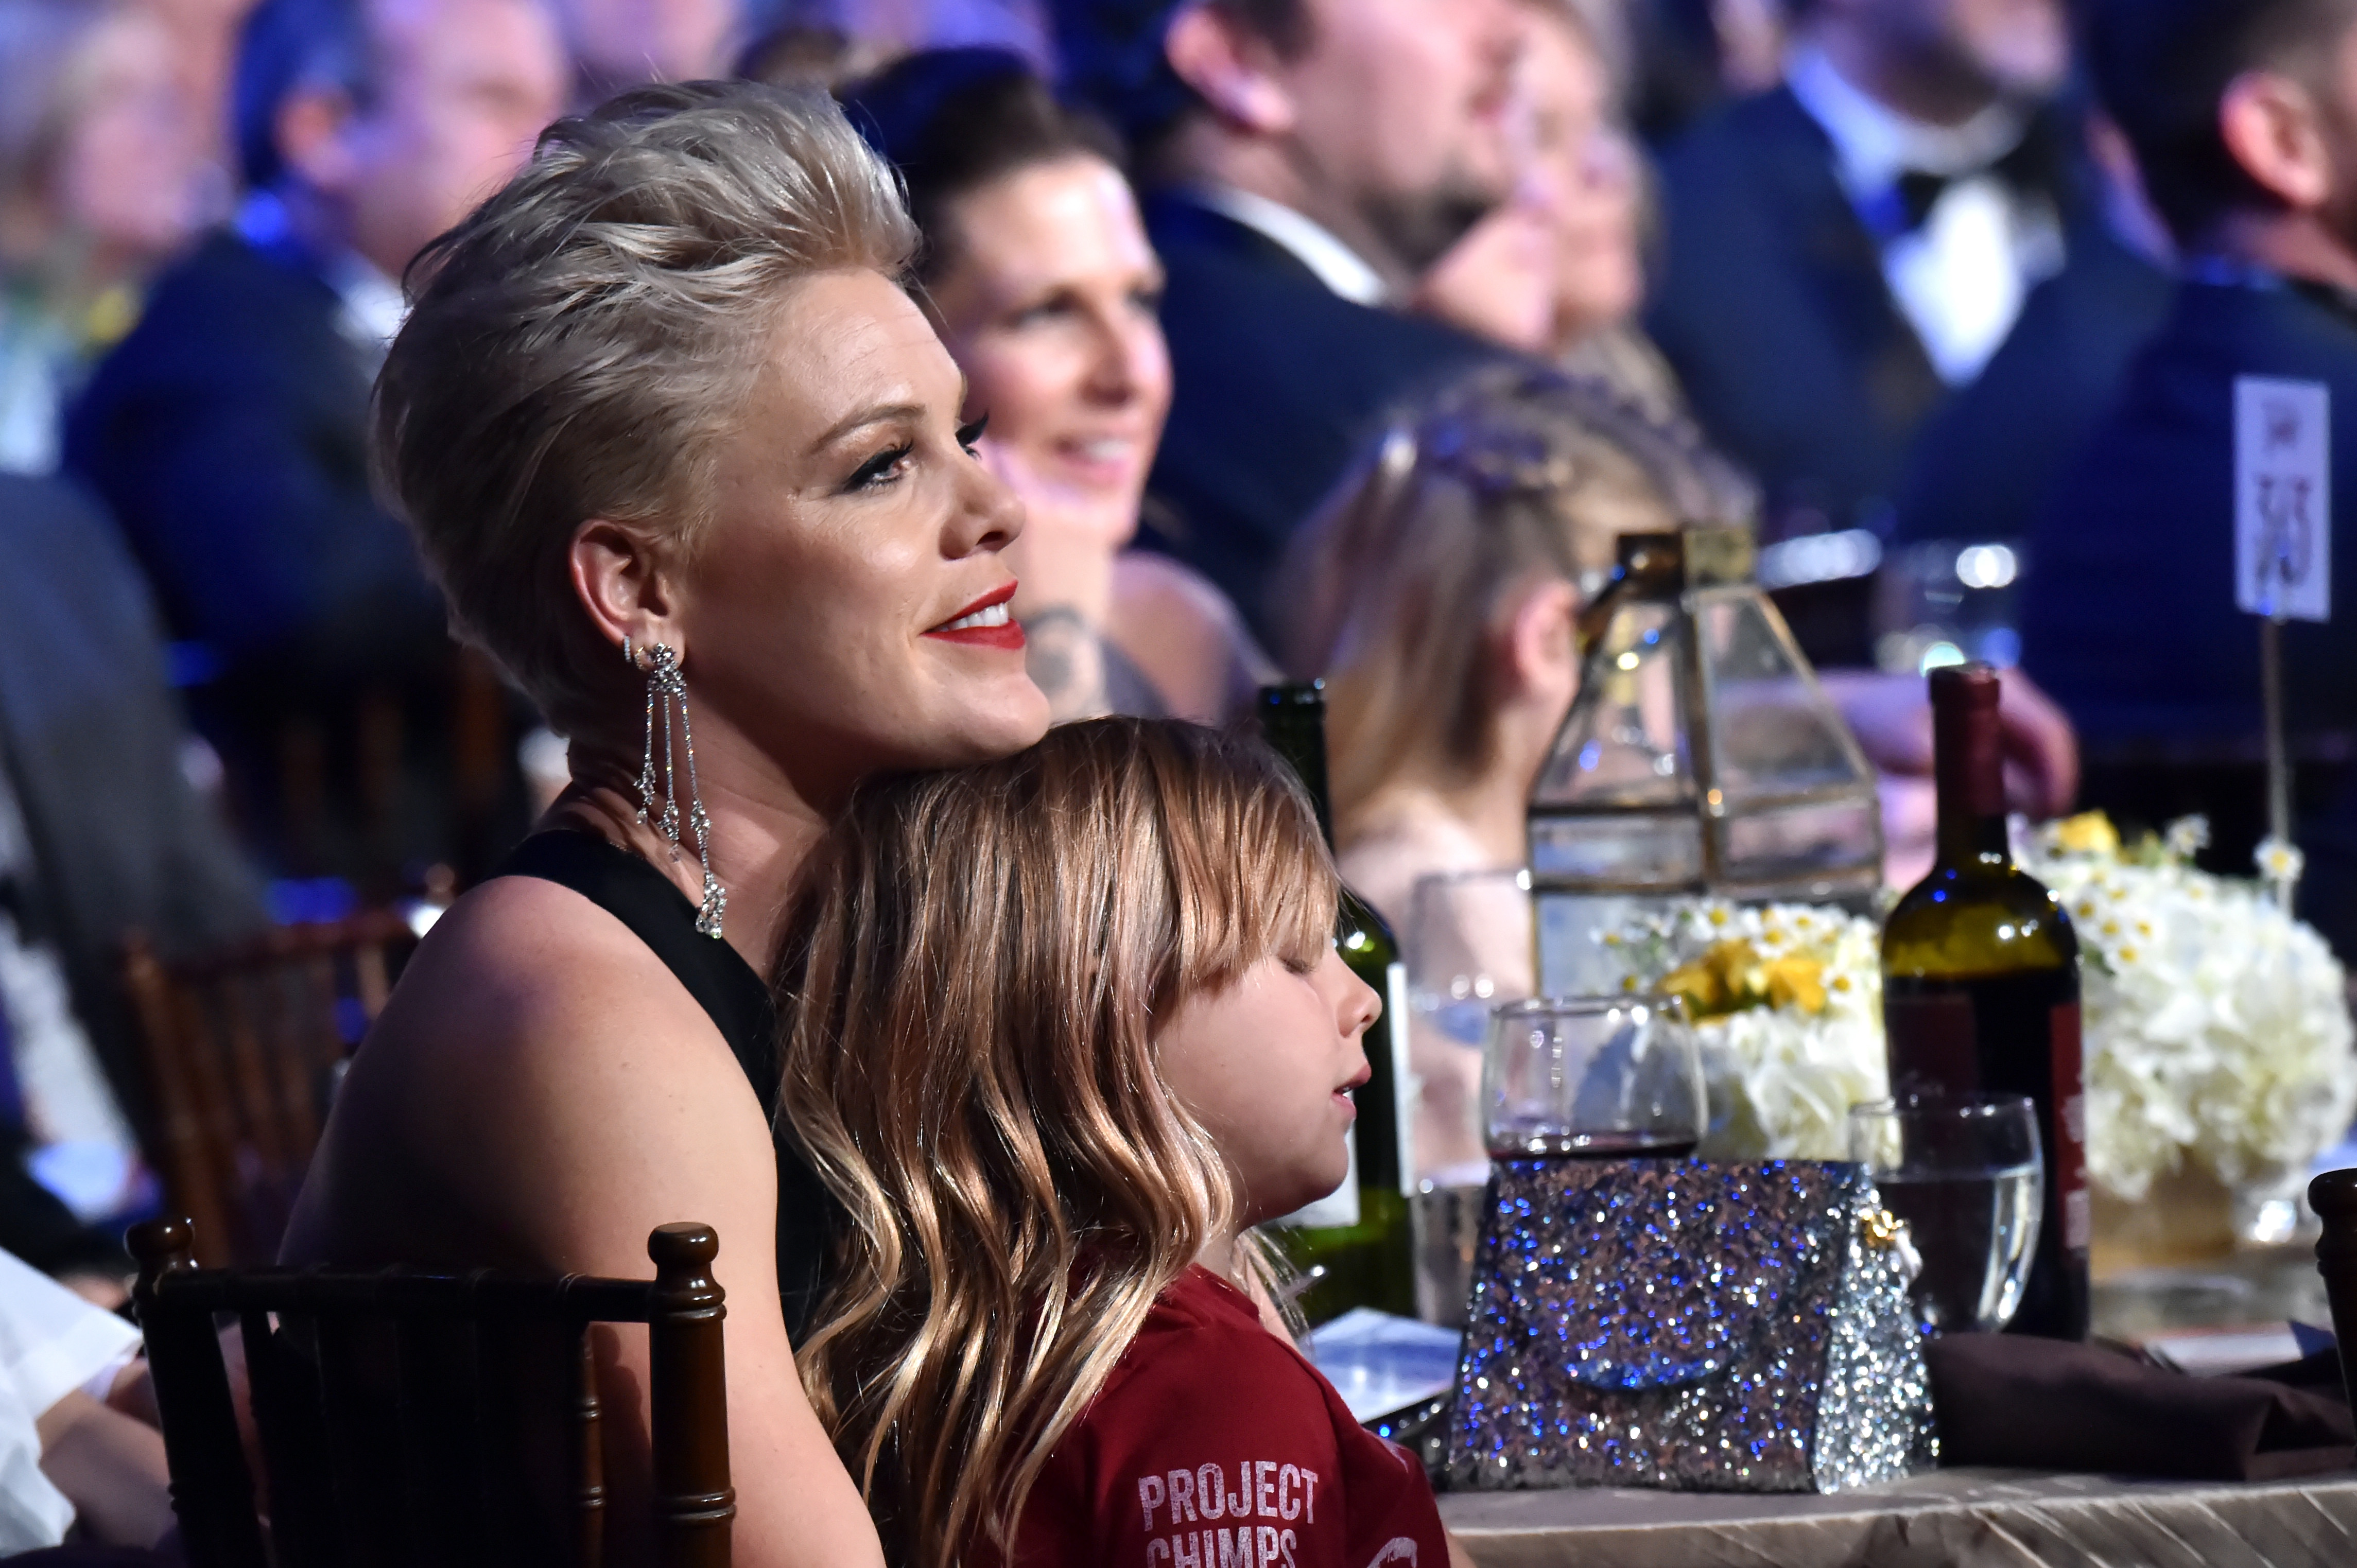 P!nk (L) and Willow Sage Hart attend MusiCares Person of the Year honoring Dolly Parton at Los Angeles Convention Center on February 8, 2019 in Los Angeles, California.